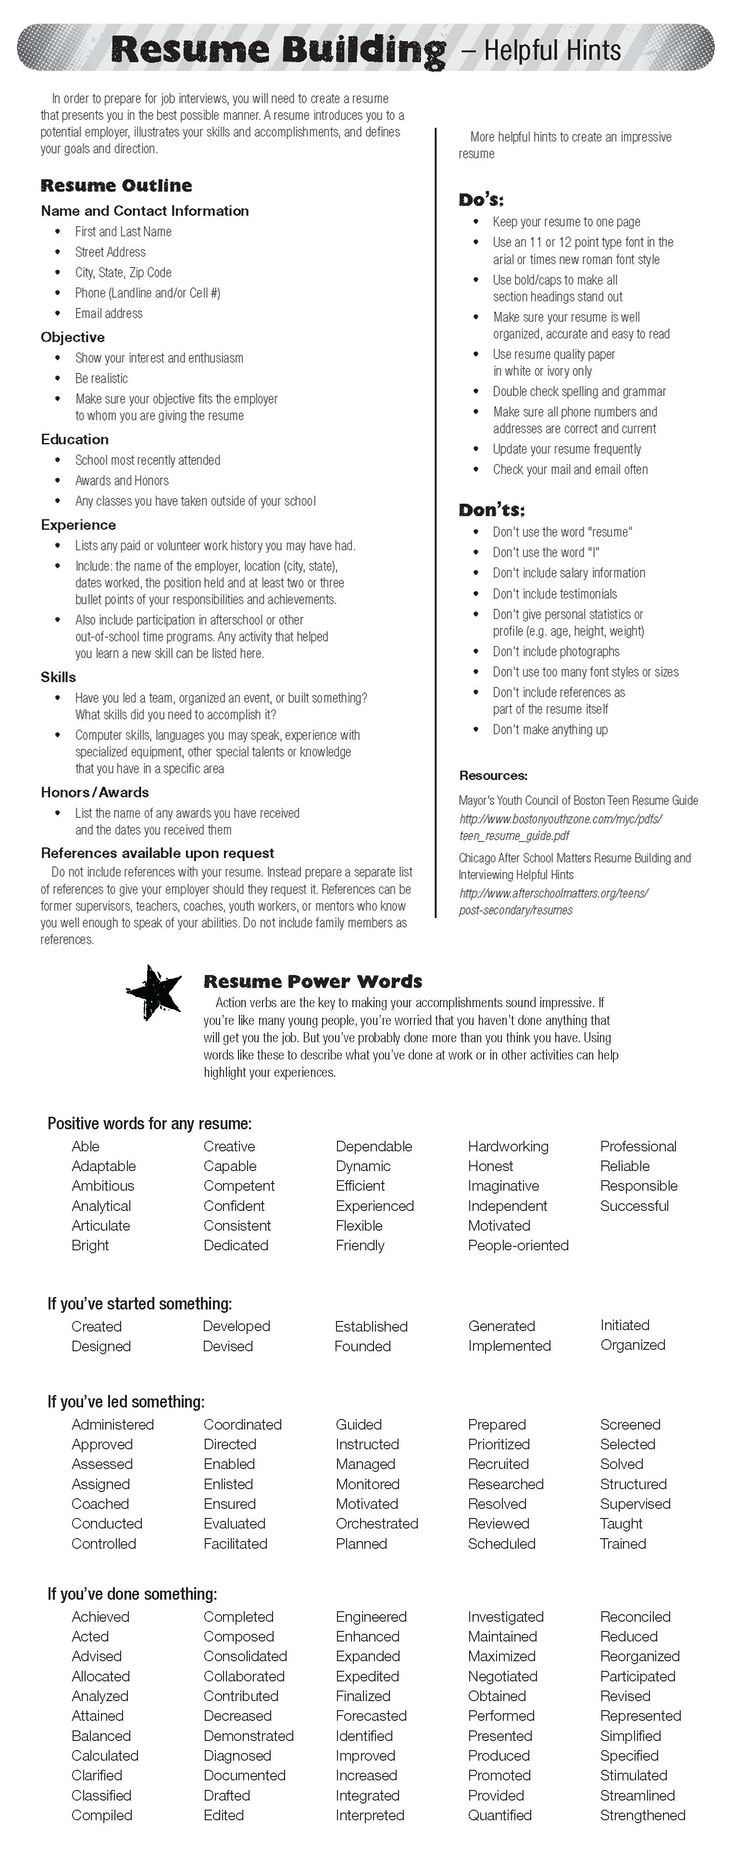 Opposenewapstandardsus  Inspiring  Ideas About Resume On Pinterest  Cv Format Resume Cv And  With Lovely  Ideas About Resume On Pinterest  Cv Format Resume Cv And Resume Templates With Astonishing Resume Templte Also Resume For Cashier Job In Addition Resume Titles Examples And Hospitality Resume Examples As Well As Musical Theatre Resume Template Additionally Photoshop Resume From Pinterestcom With Opposenewapstandardsus  Lovely  Ideas About Resume On Pinterest  Cv Format Resume Cv And  With Astonishing  Ideas About Resume On Pinterest  Cv Format Resume Cv And Resume Templates And Inspiring Resume Templte Also Resume For Cashier Job In Addition Resume Titles Examples From Pinterestcom